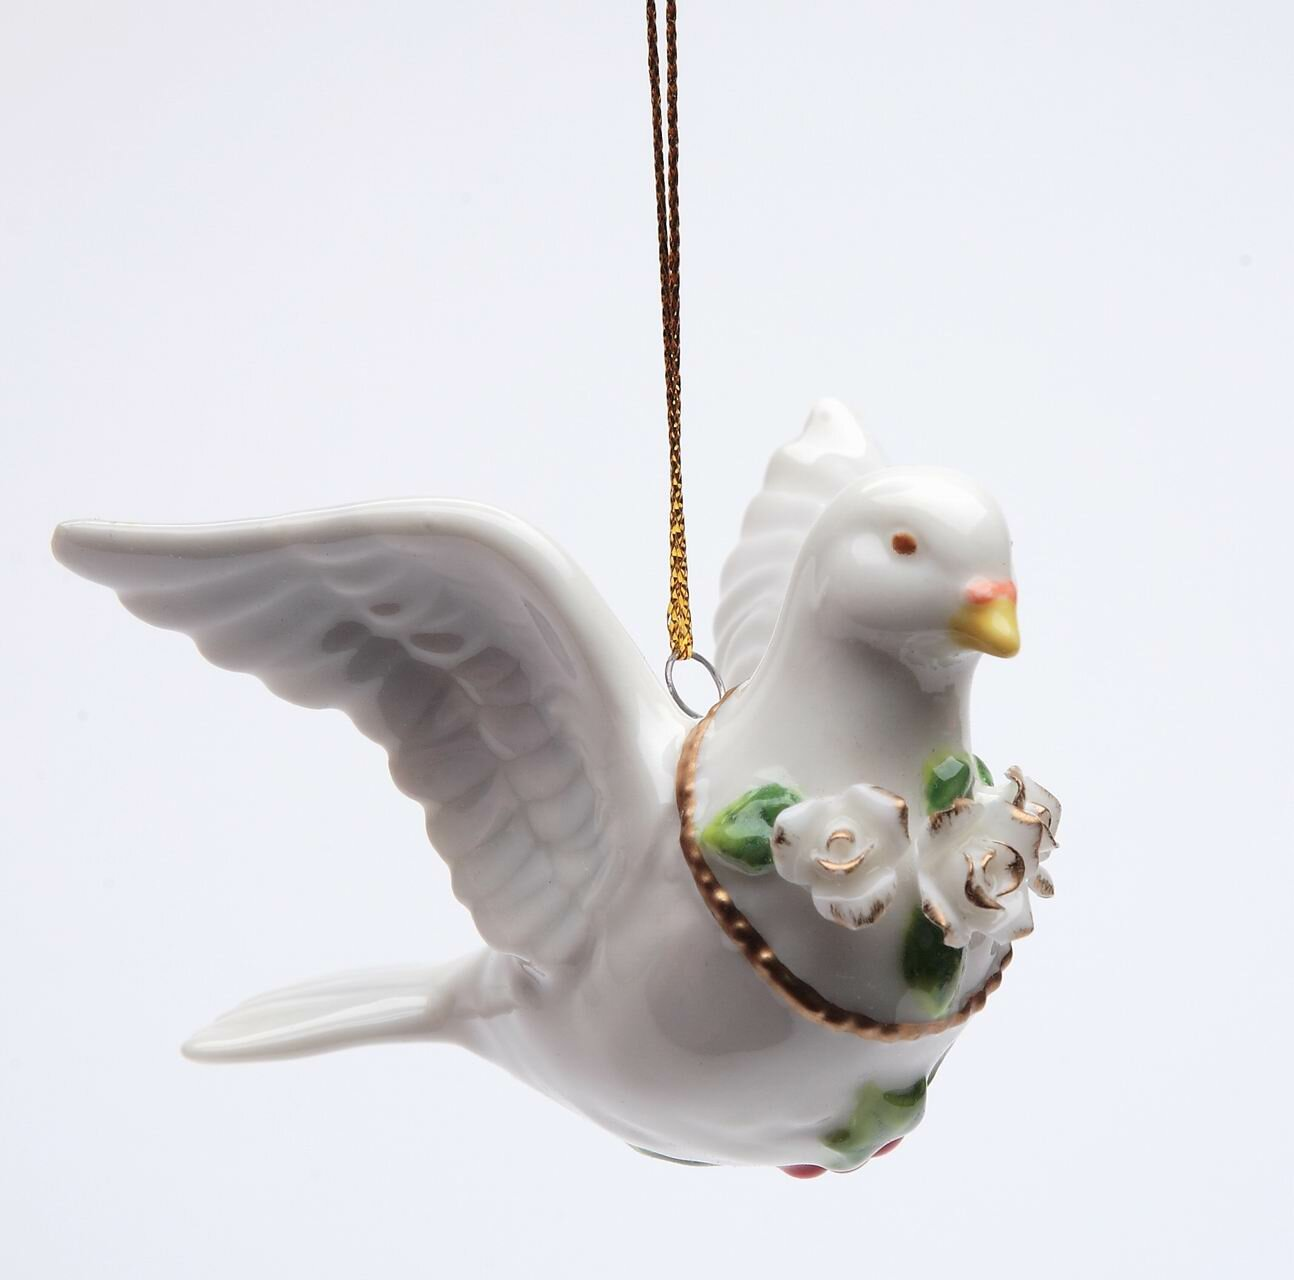 The Holiday Aisle Dobbins Dove With Roses Hanging Figurine Ornament Wayfair